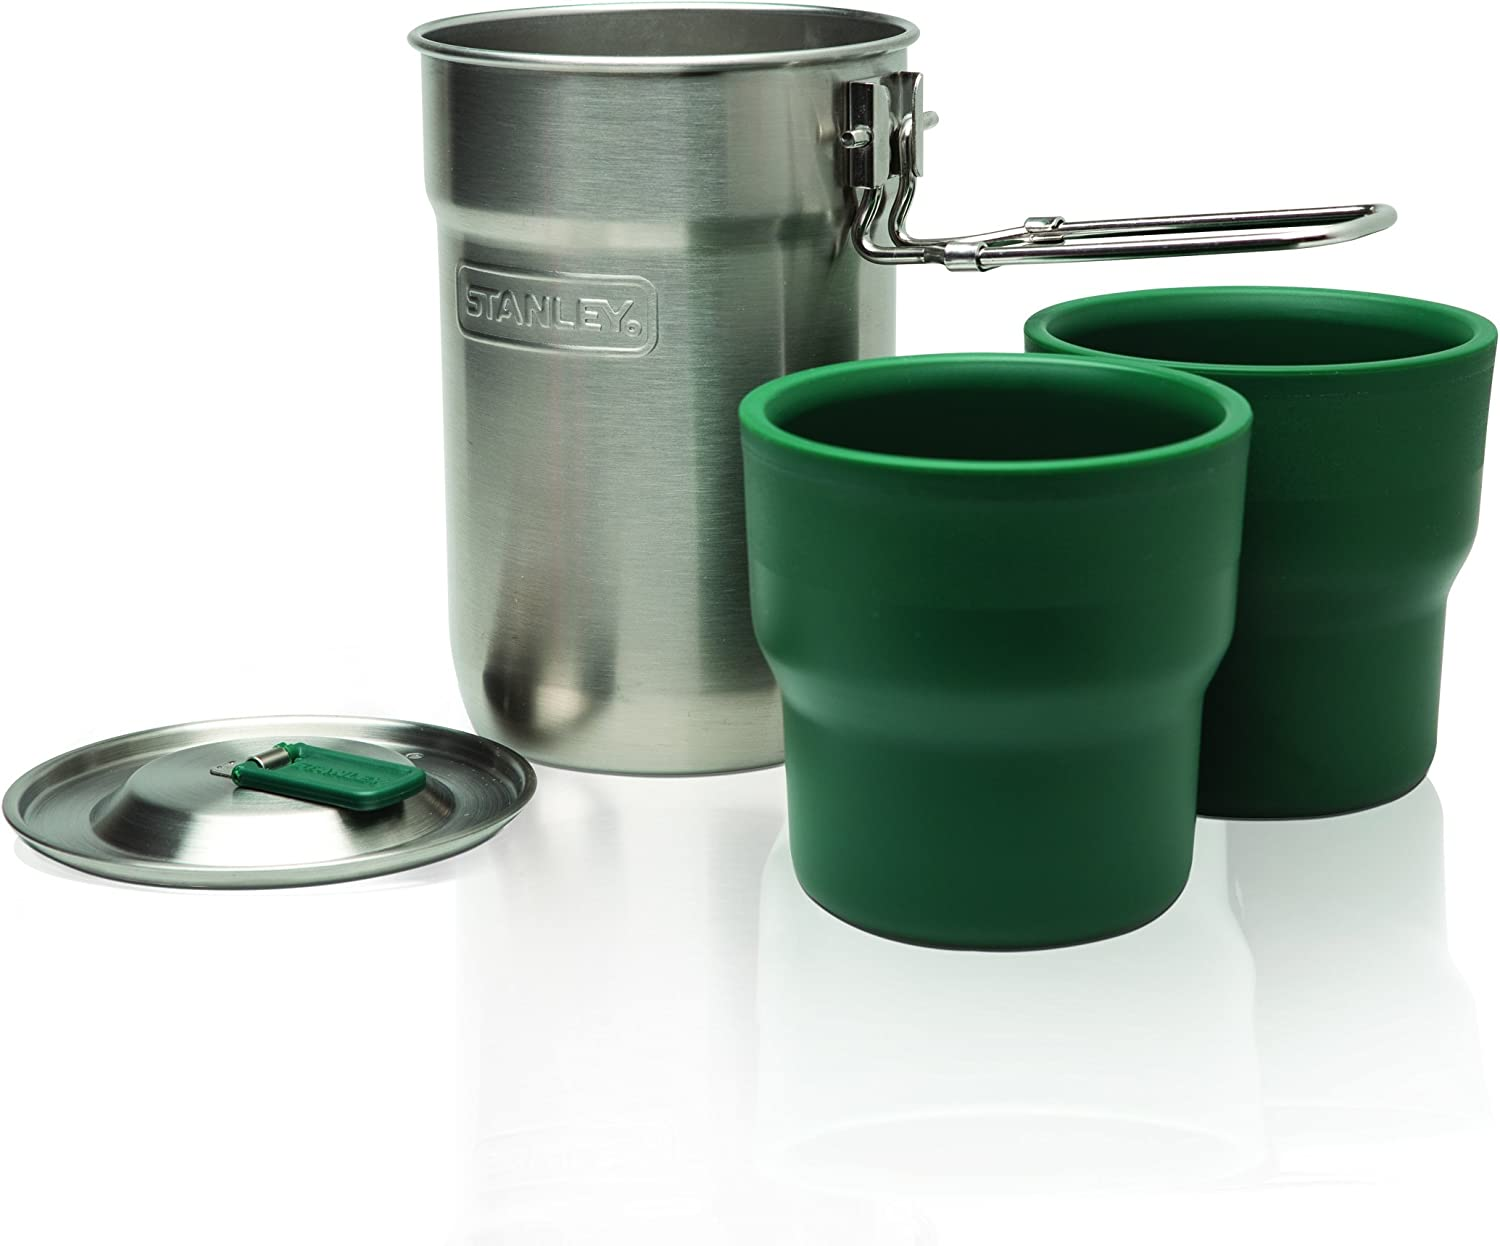 small camping kettle